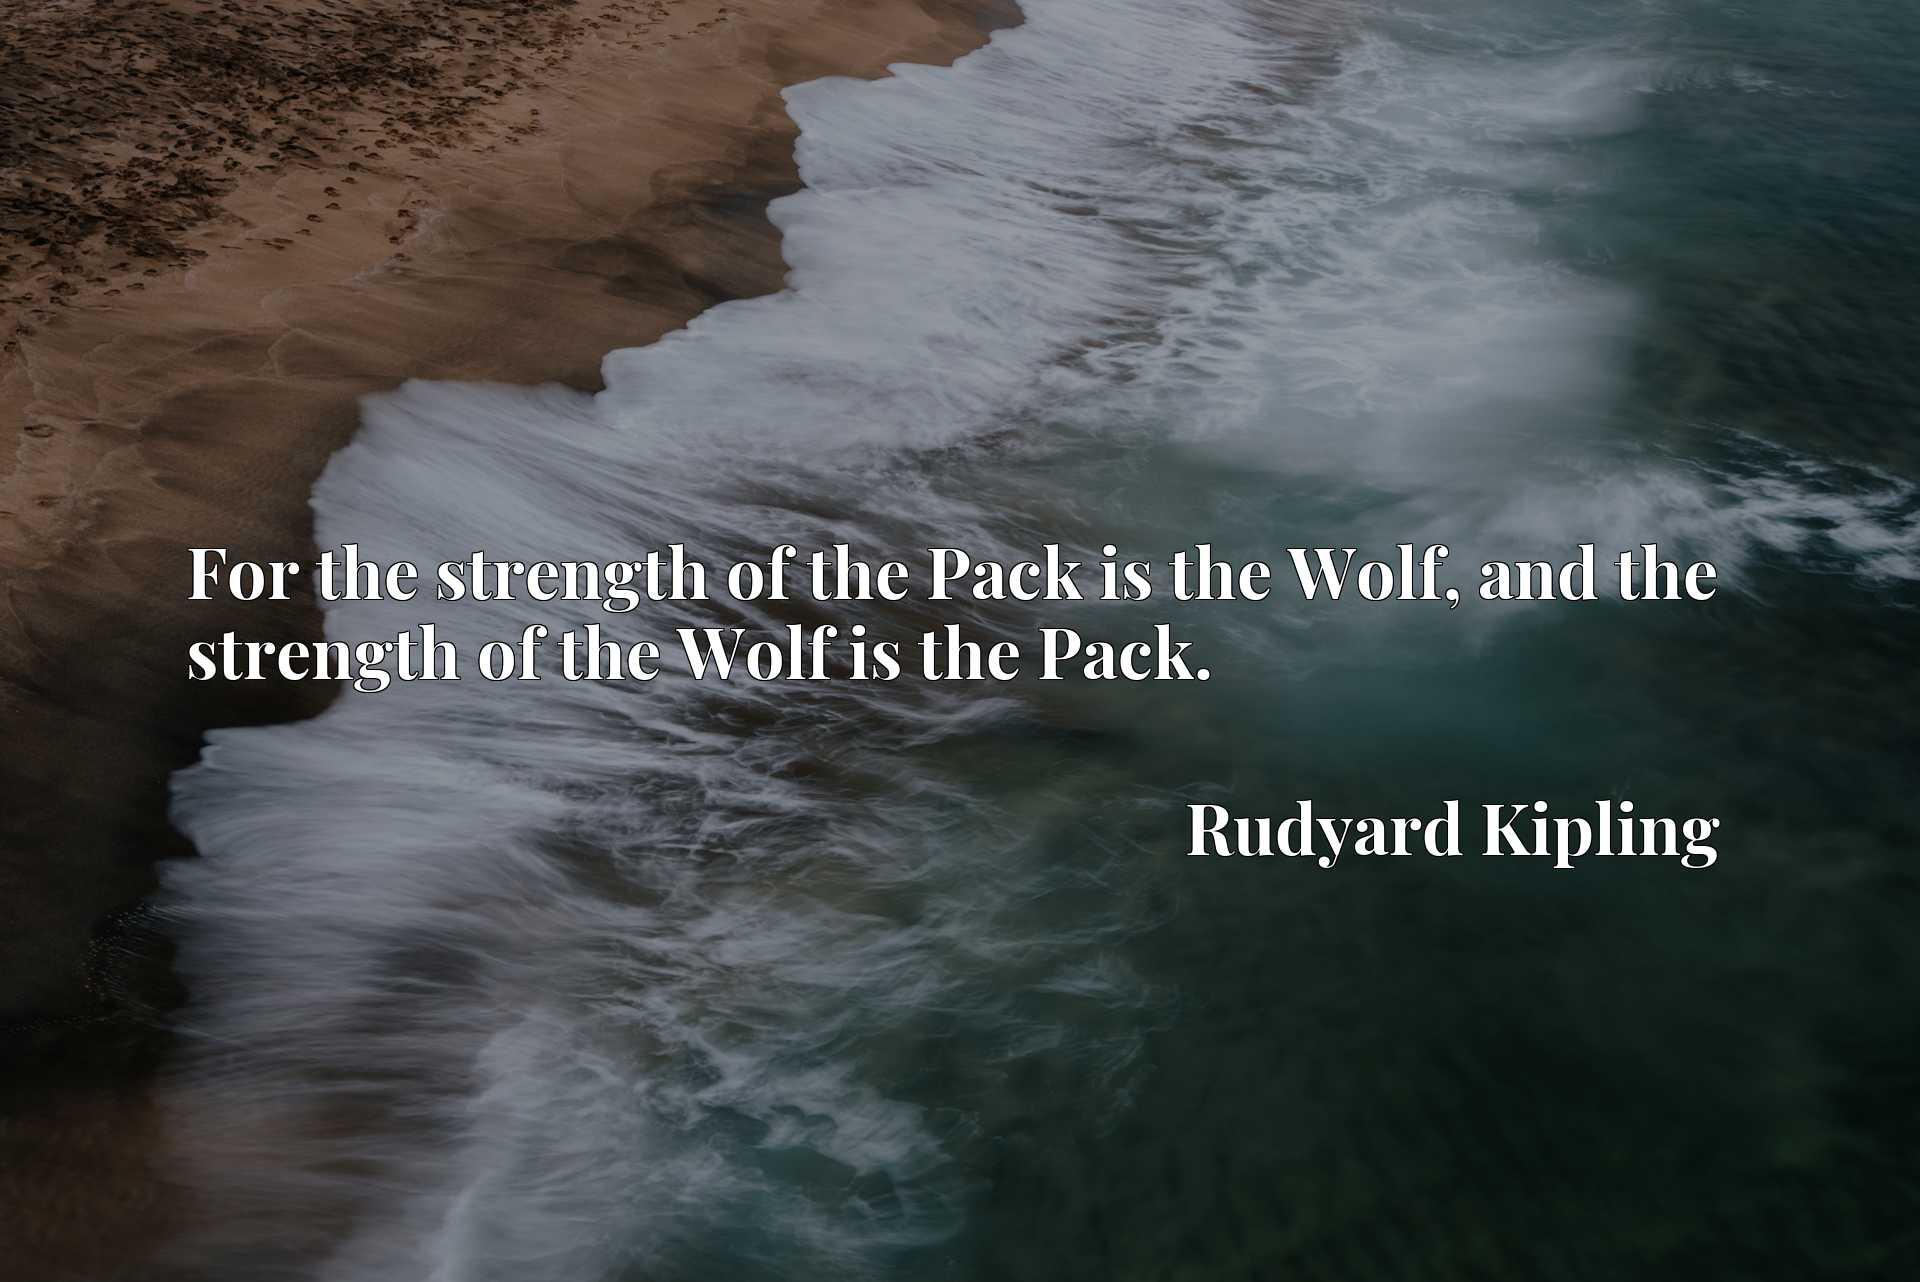 Quote Picture :For the strength of the Pack is the Wolf, and the strength of the Wolf is the Pack.